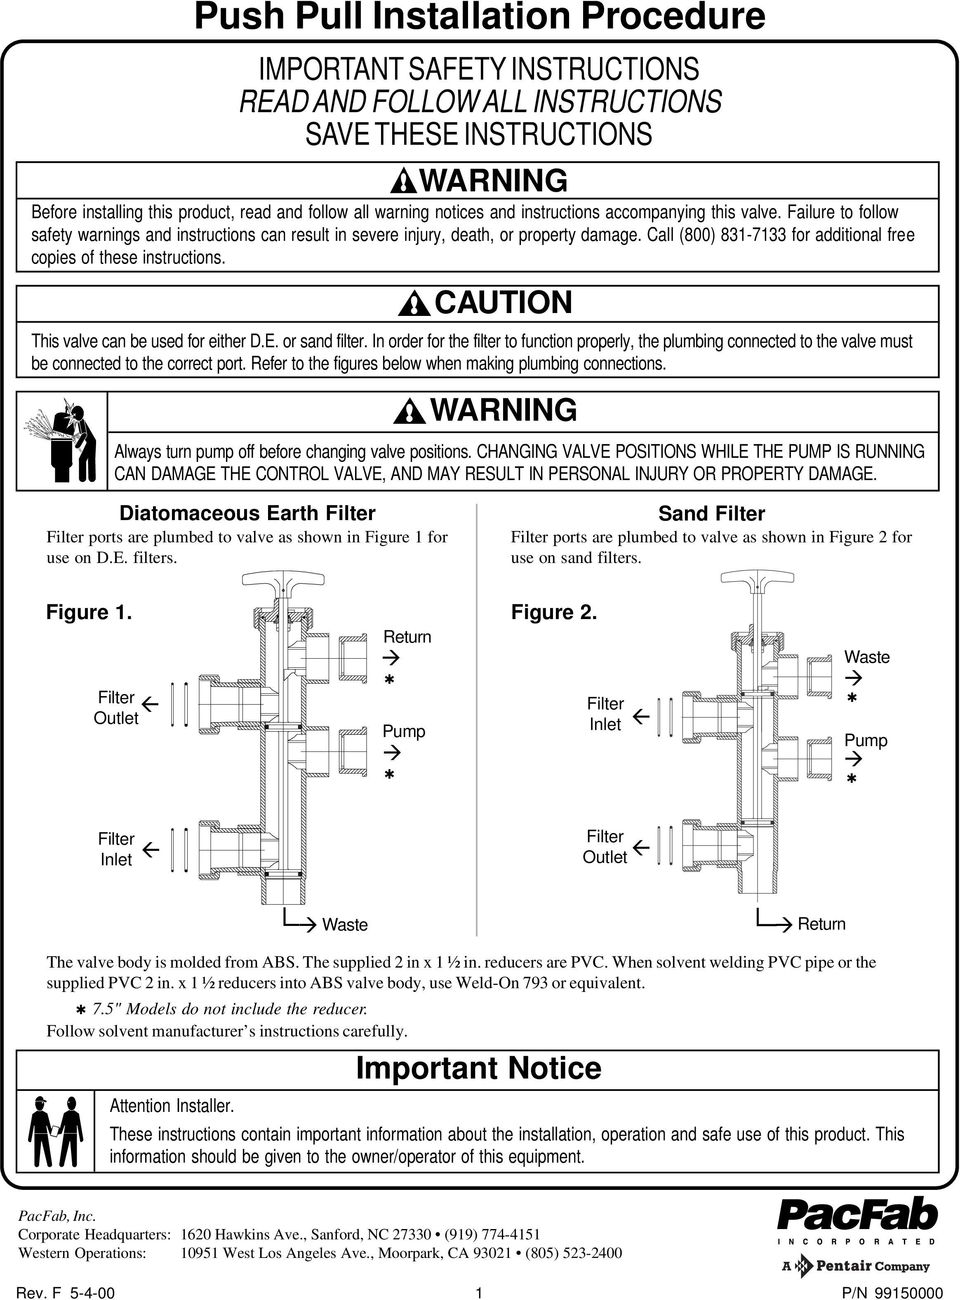 Call (800) 831-7133 for additional free copies of these instructions. CAUTION This valve can be used for either D.E. or sand filter.